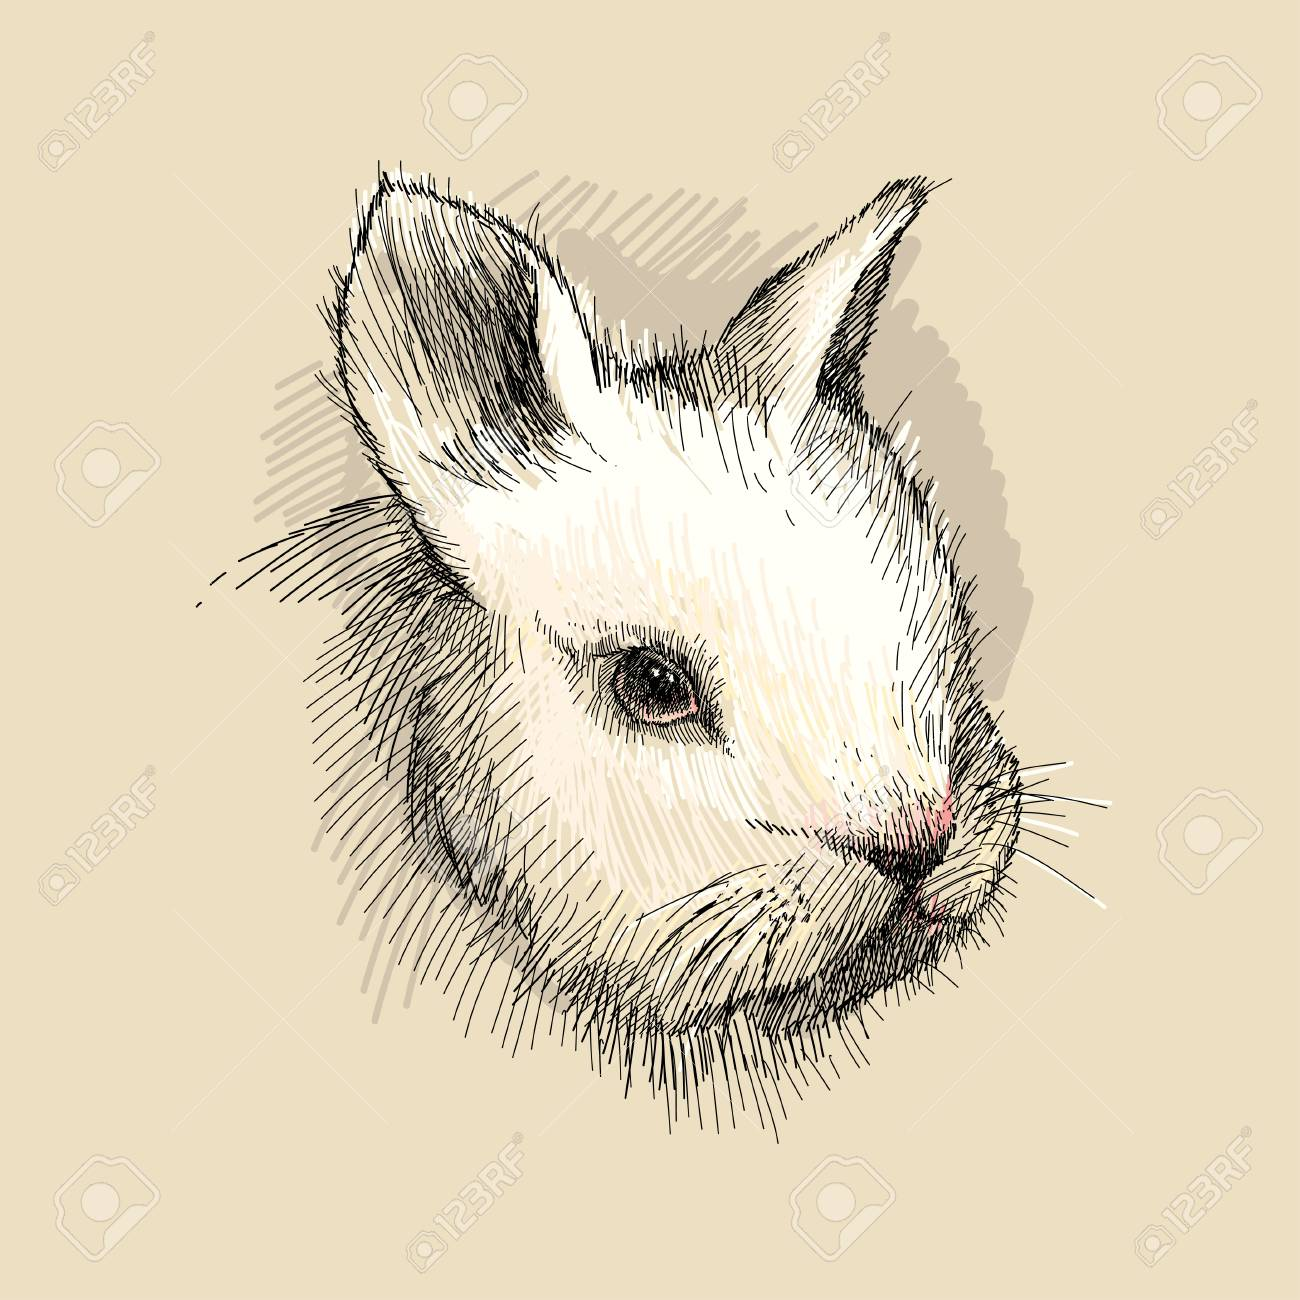 1300x1300 Vector Graphic Sketch Of White Baby Rabbit Profile On The Beige